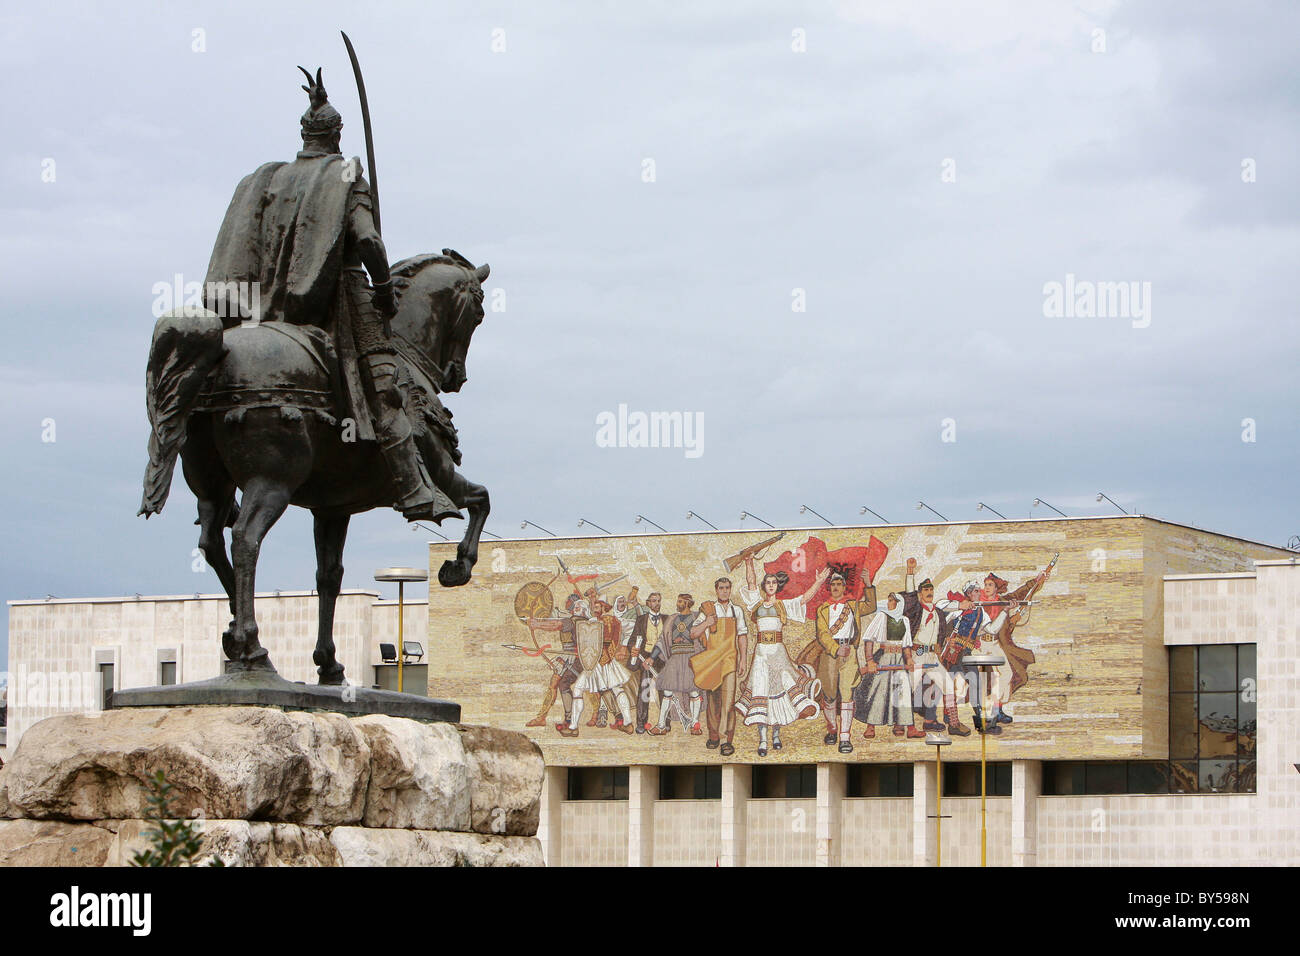 Albania Tirane Tirana Equestrian statue of George Castriot Skanderbeg, the Albanian national hero outside the National - Stock Image